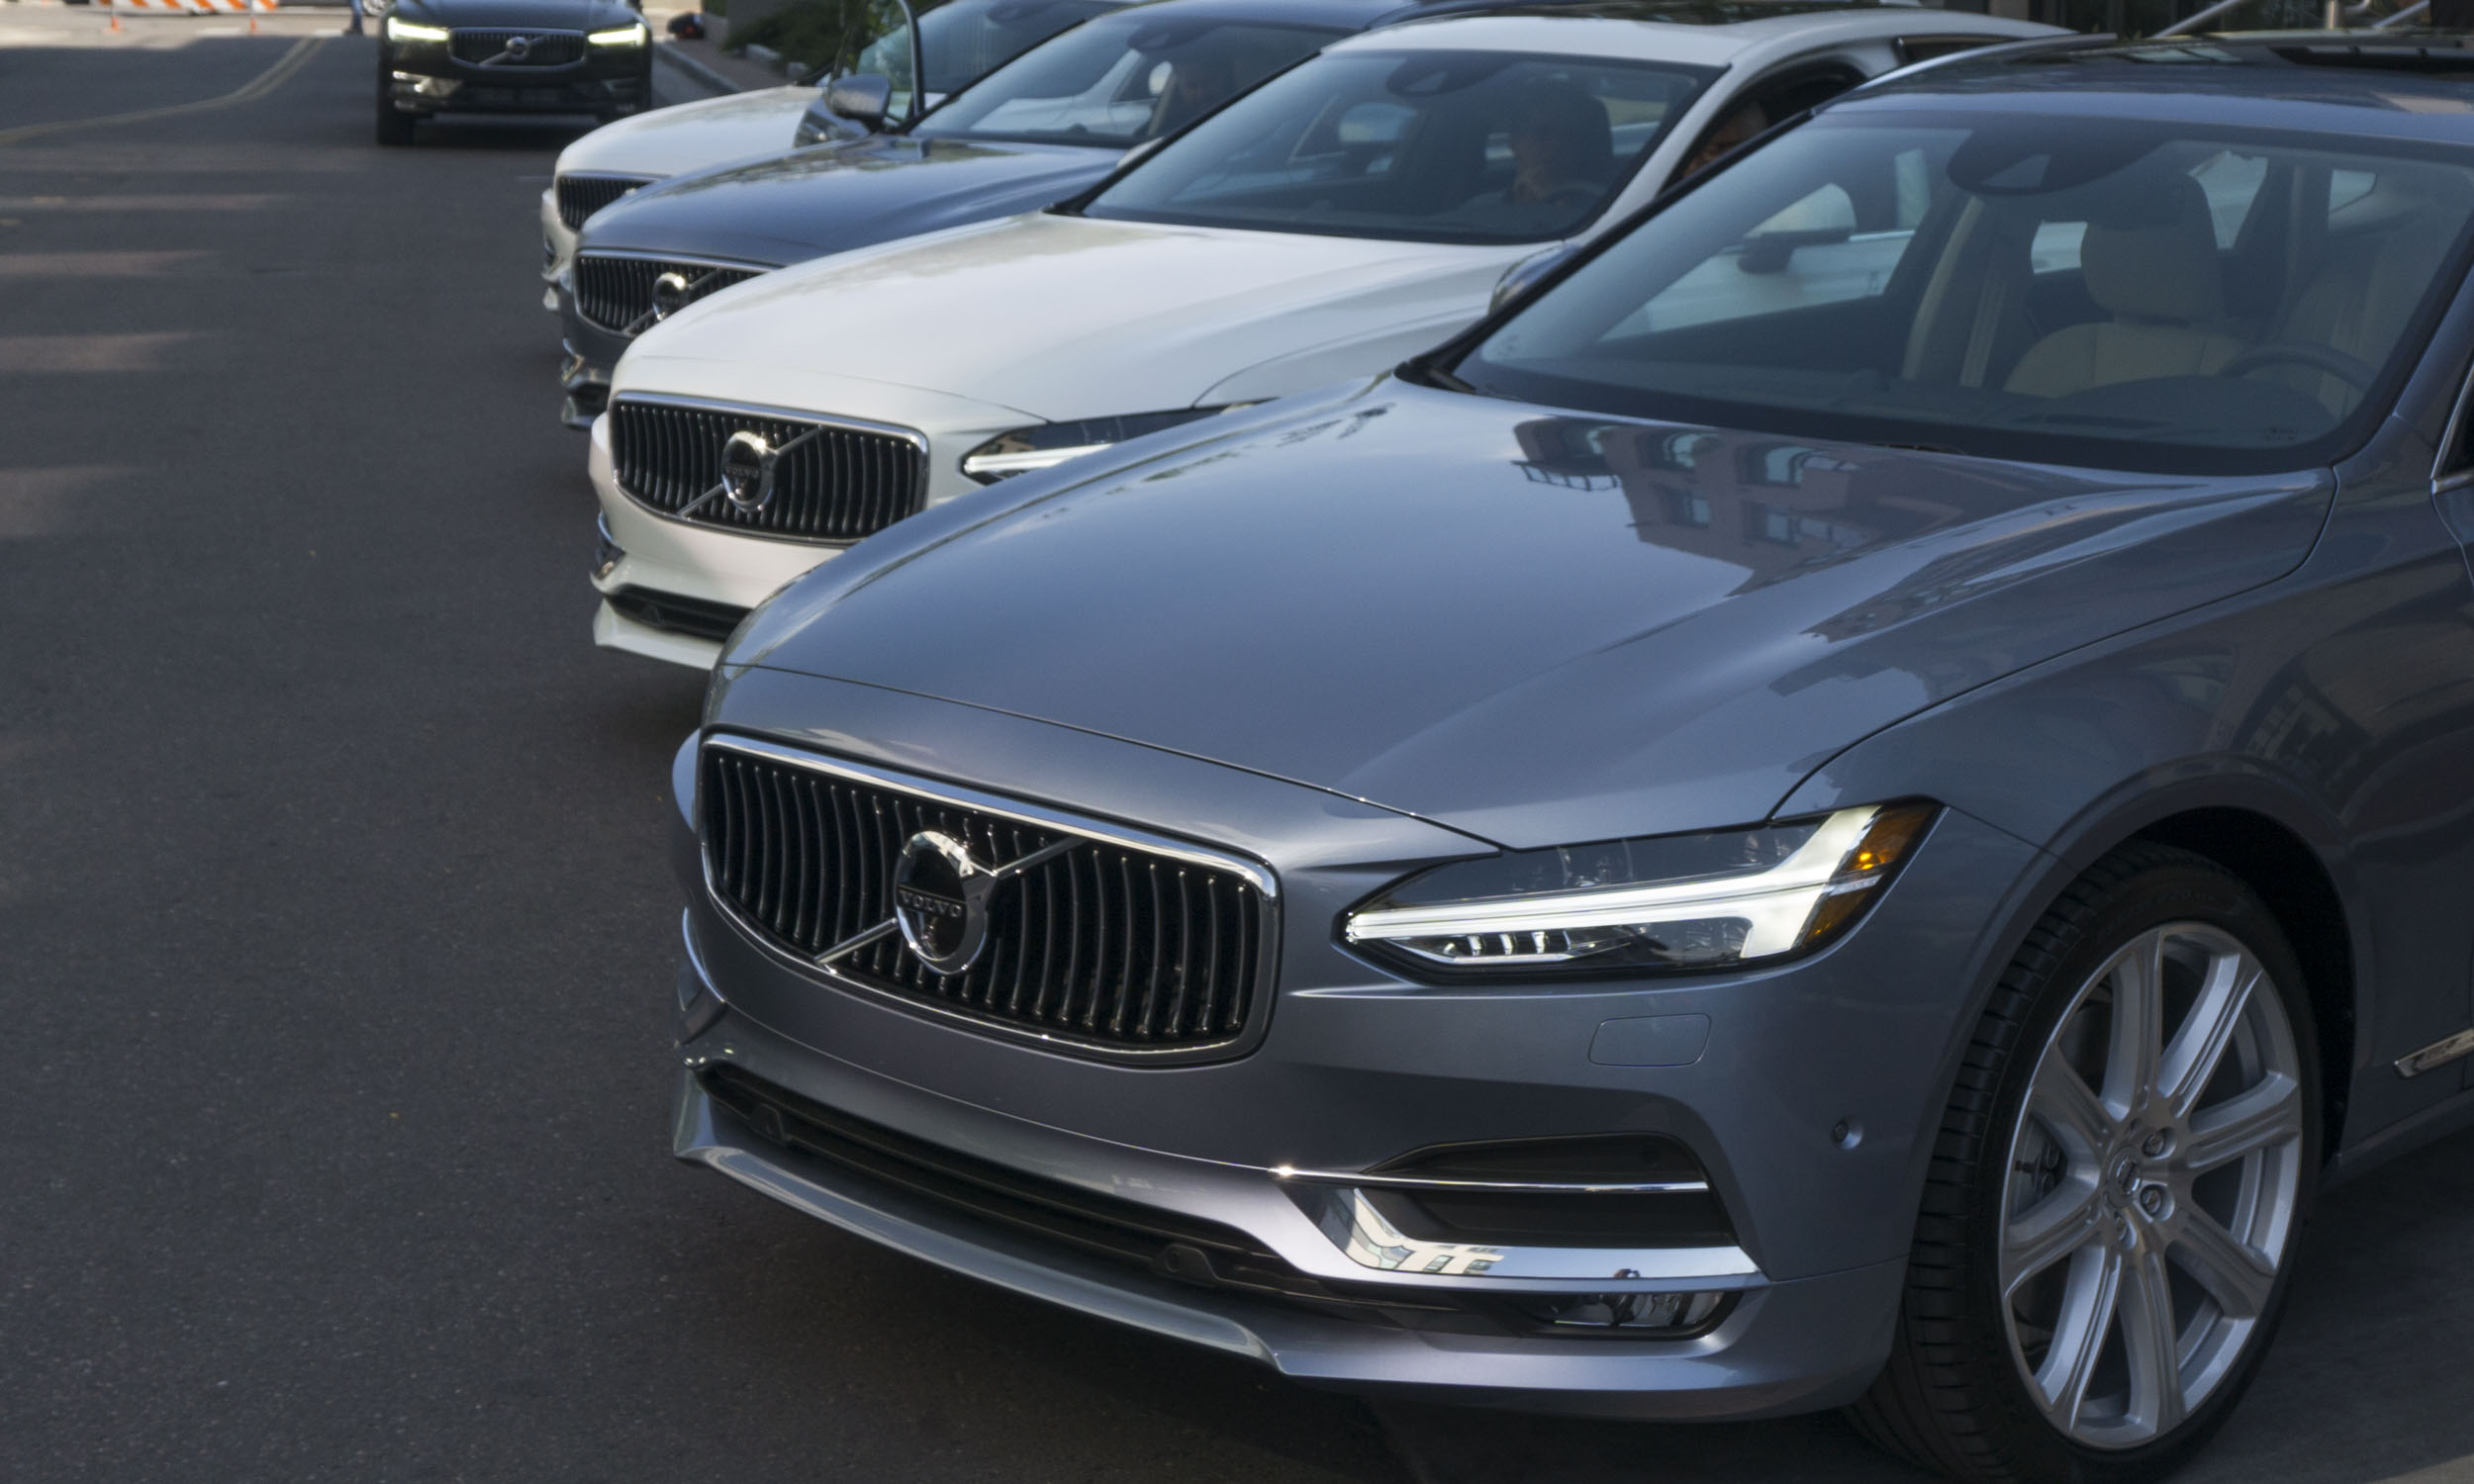 Volvo V60 New Model >> 2018 Volvo XC60: First Drive Review - » AutoNXT